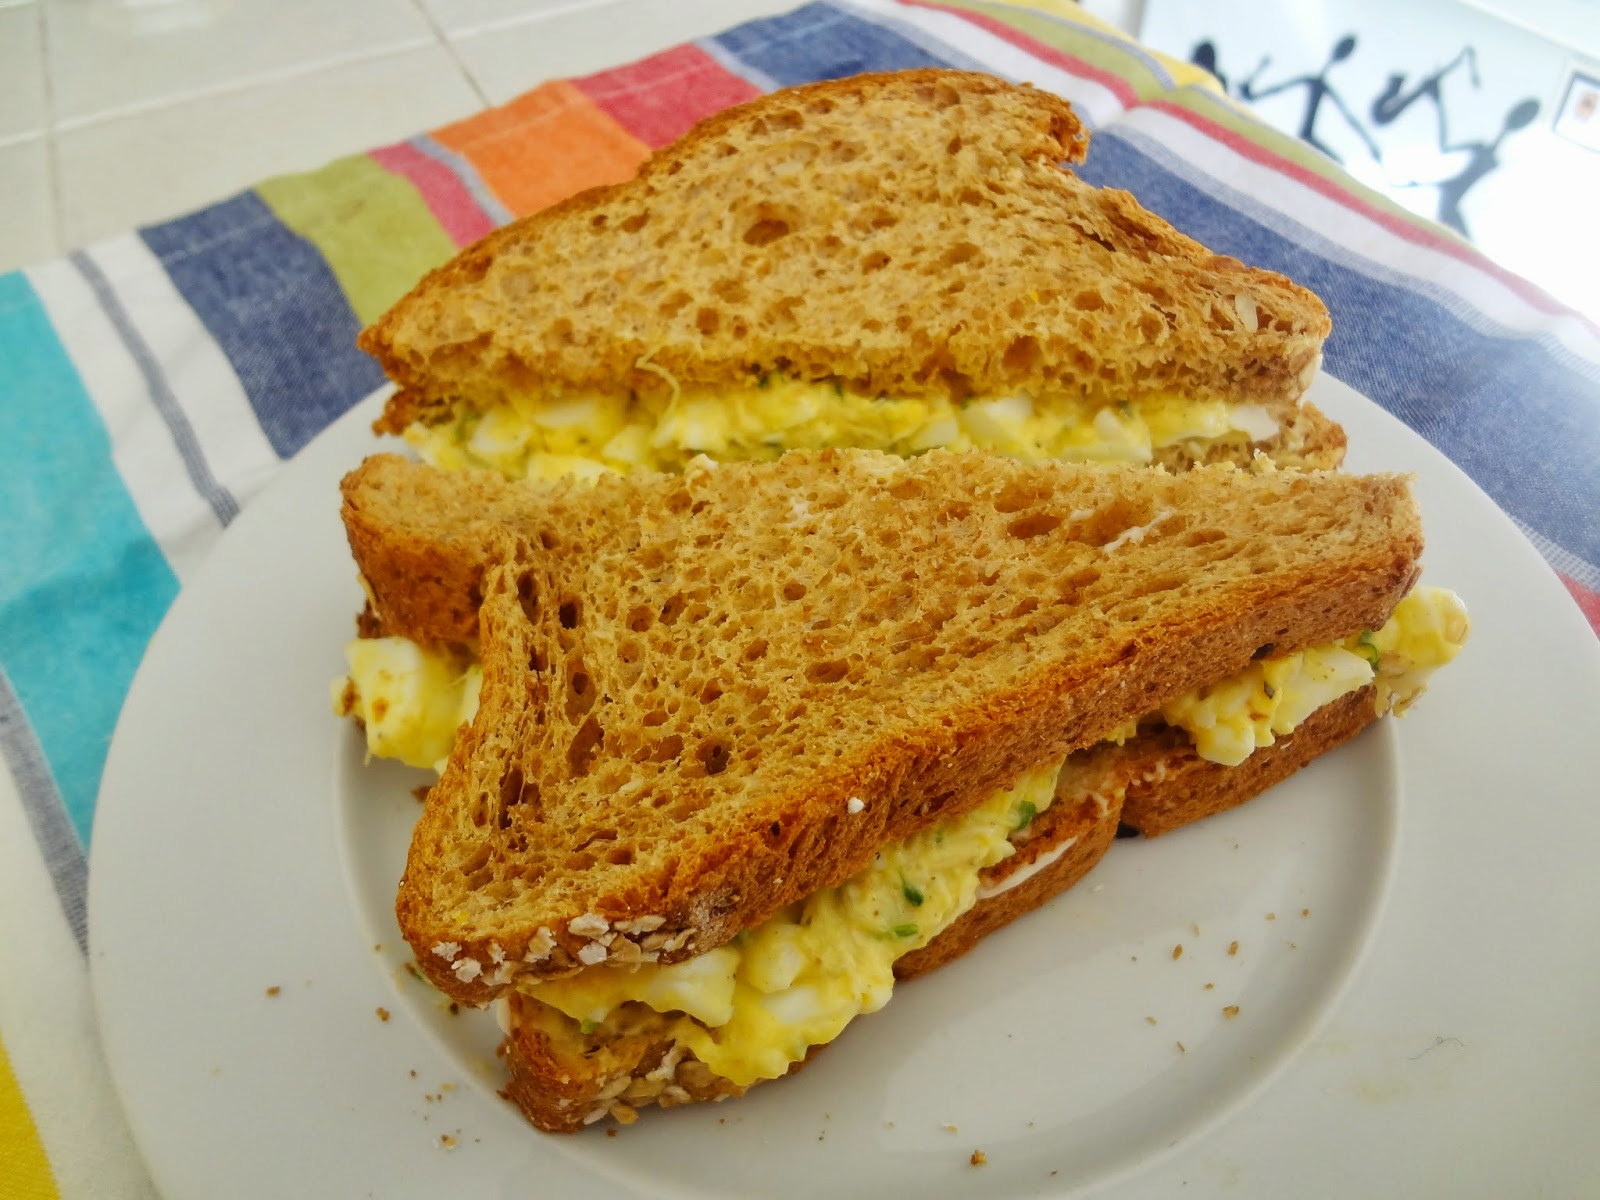 Improved Egg Salad Sandwich with sprouts